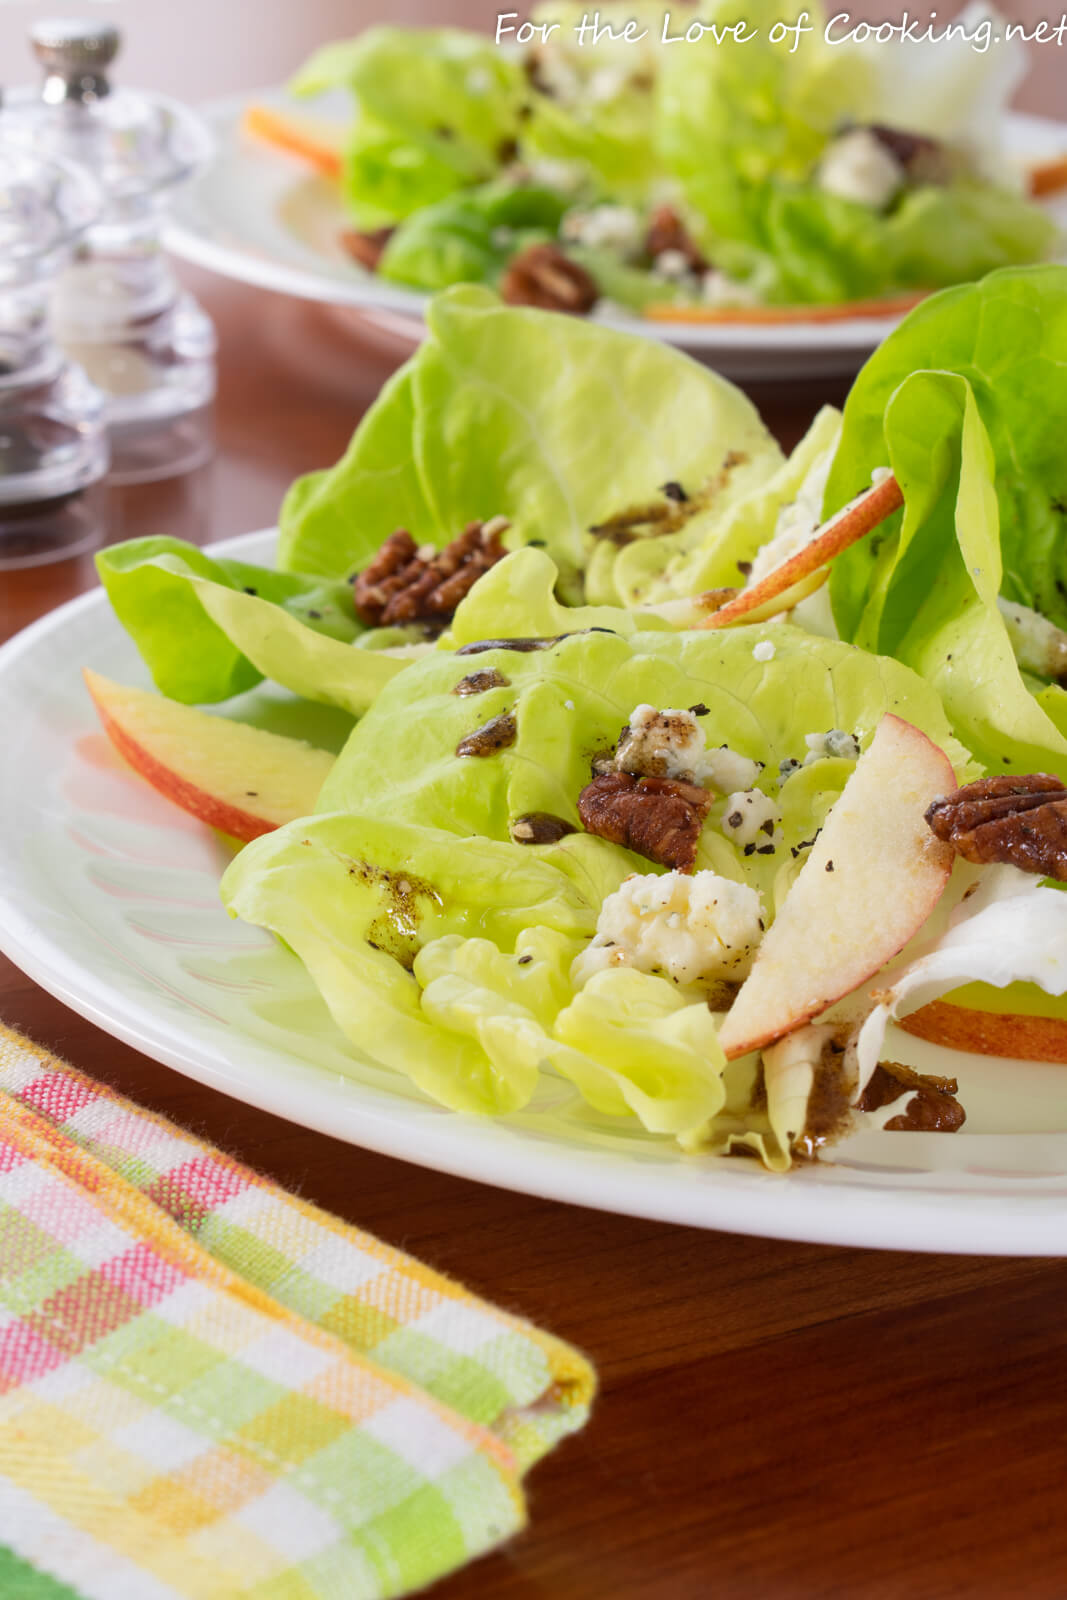 Butter Lettuce with Blue Cheese, Apples and Candied Pecans with a Balsamic Vinaigrette